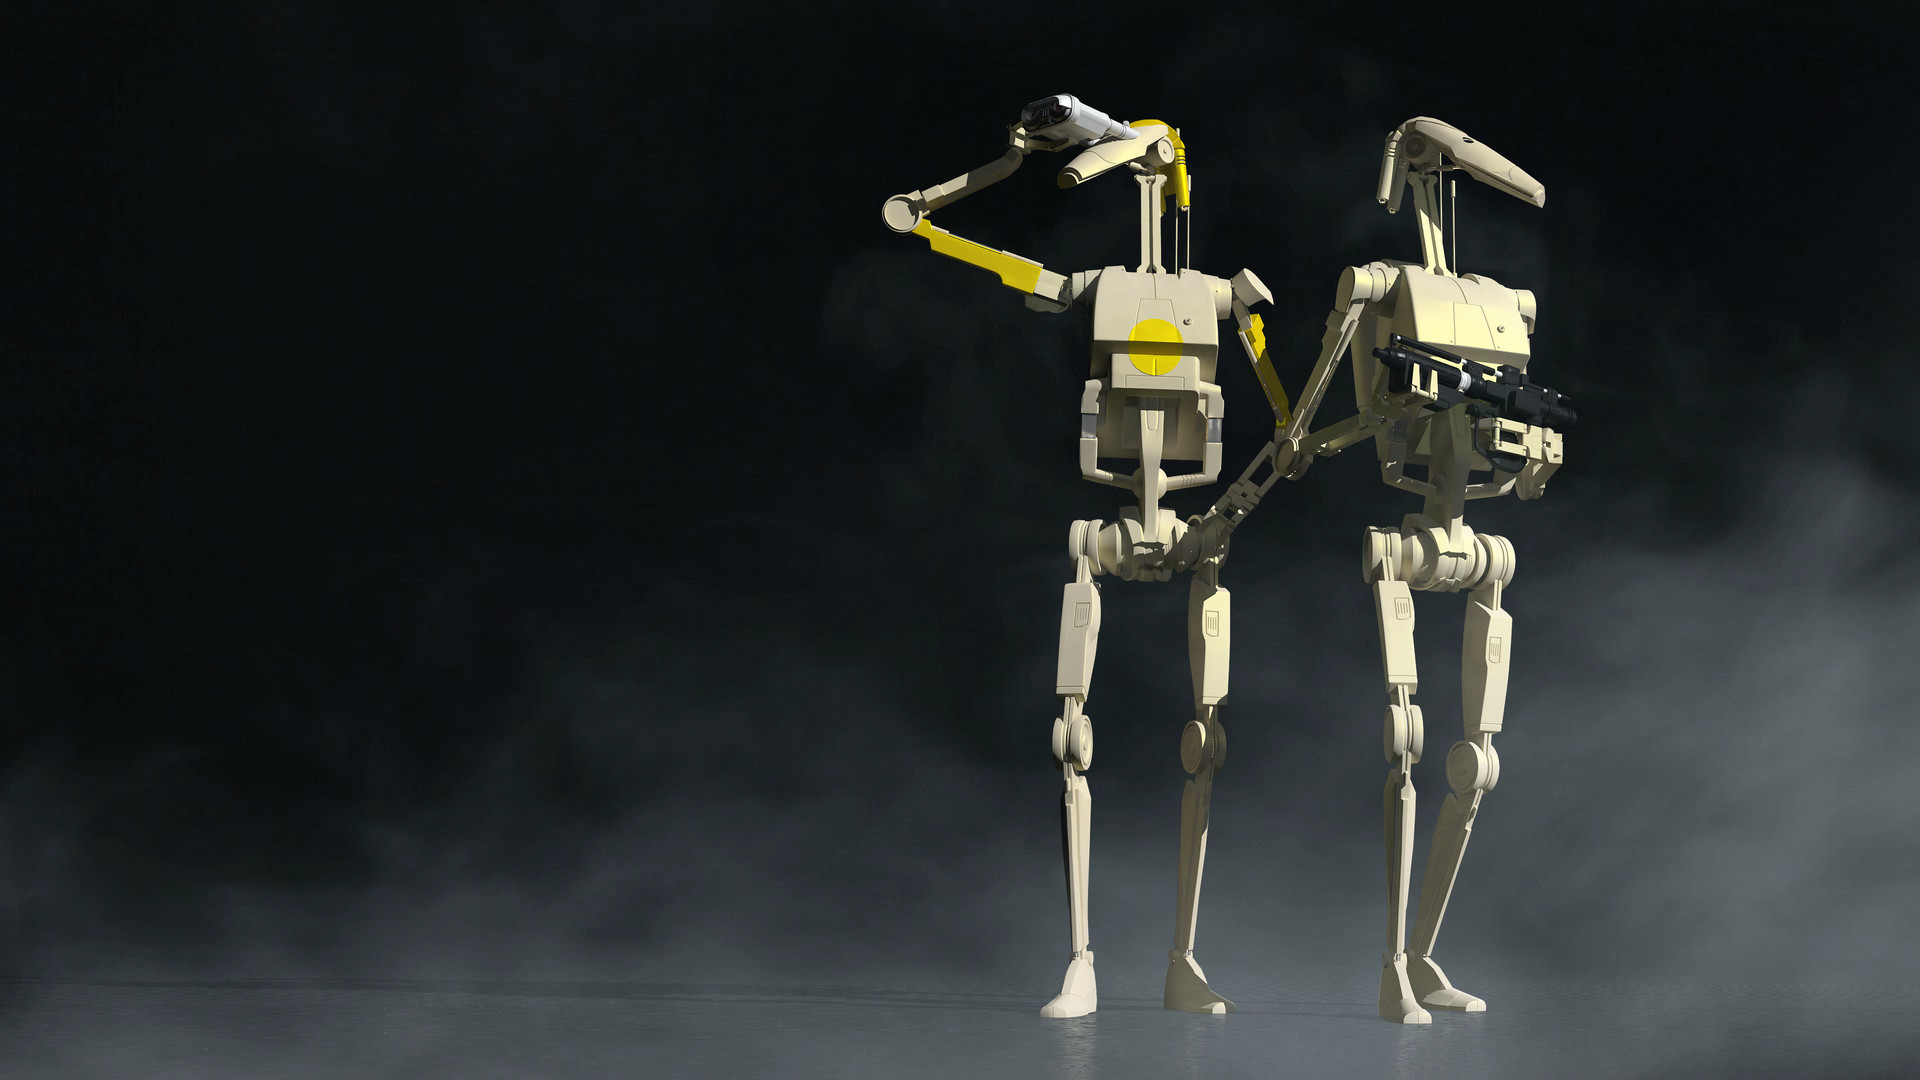 Star Wars Droids Wallpaper Posted By Ethan Walker